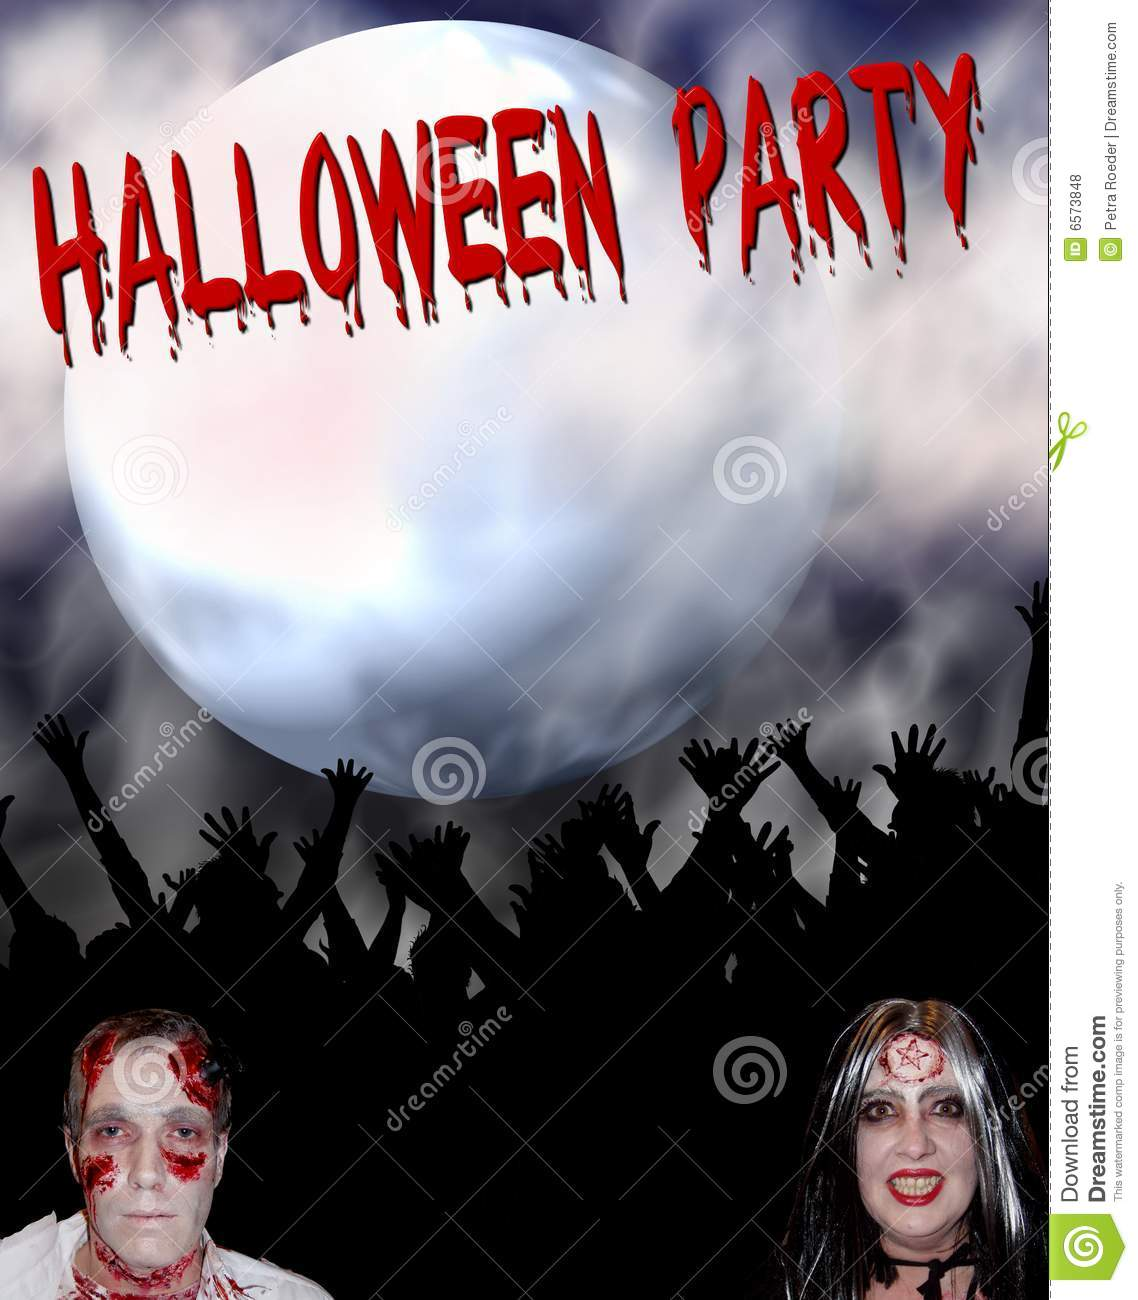 Halloween Party Background Royalty Free Stock Photos - Image: 6573848